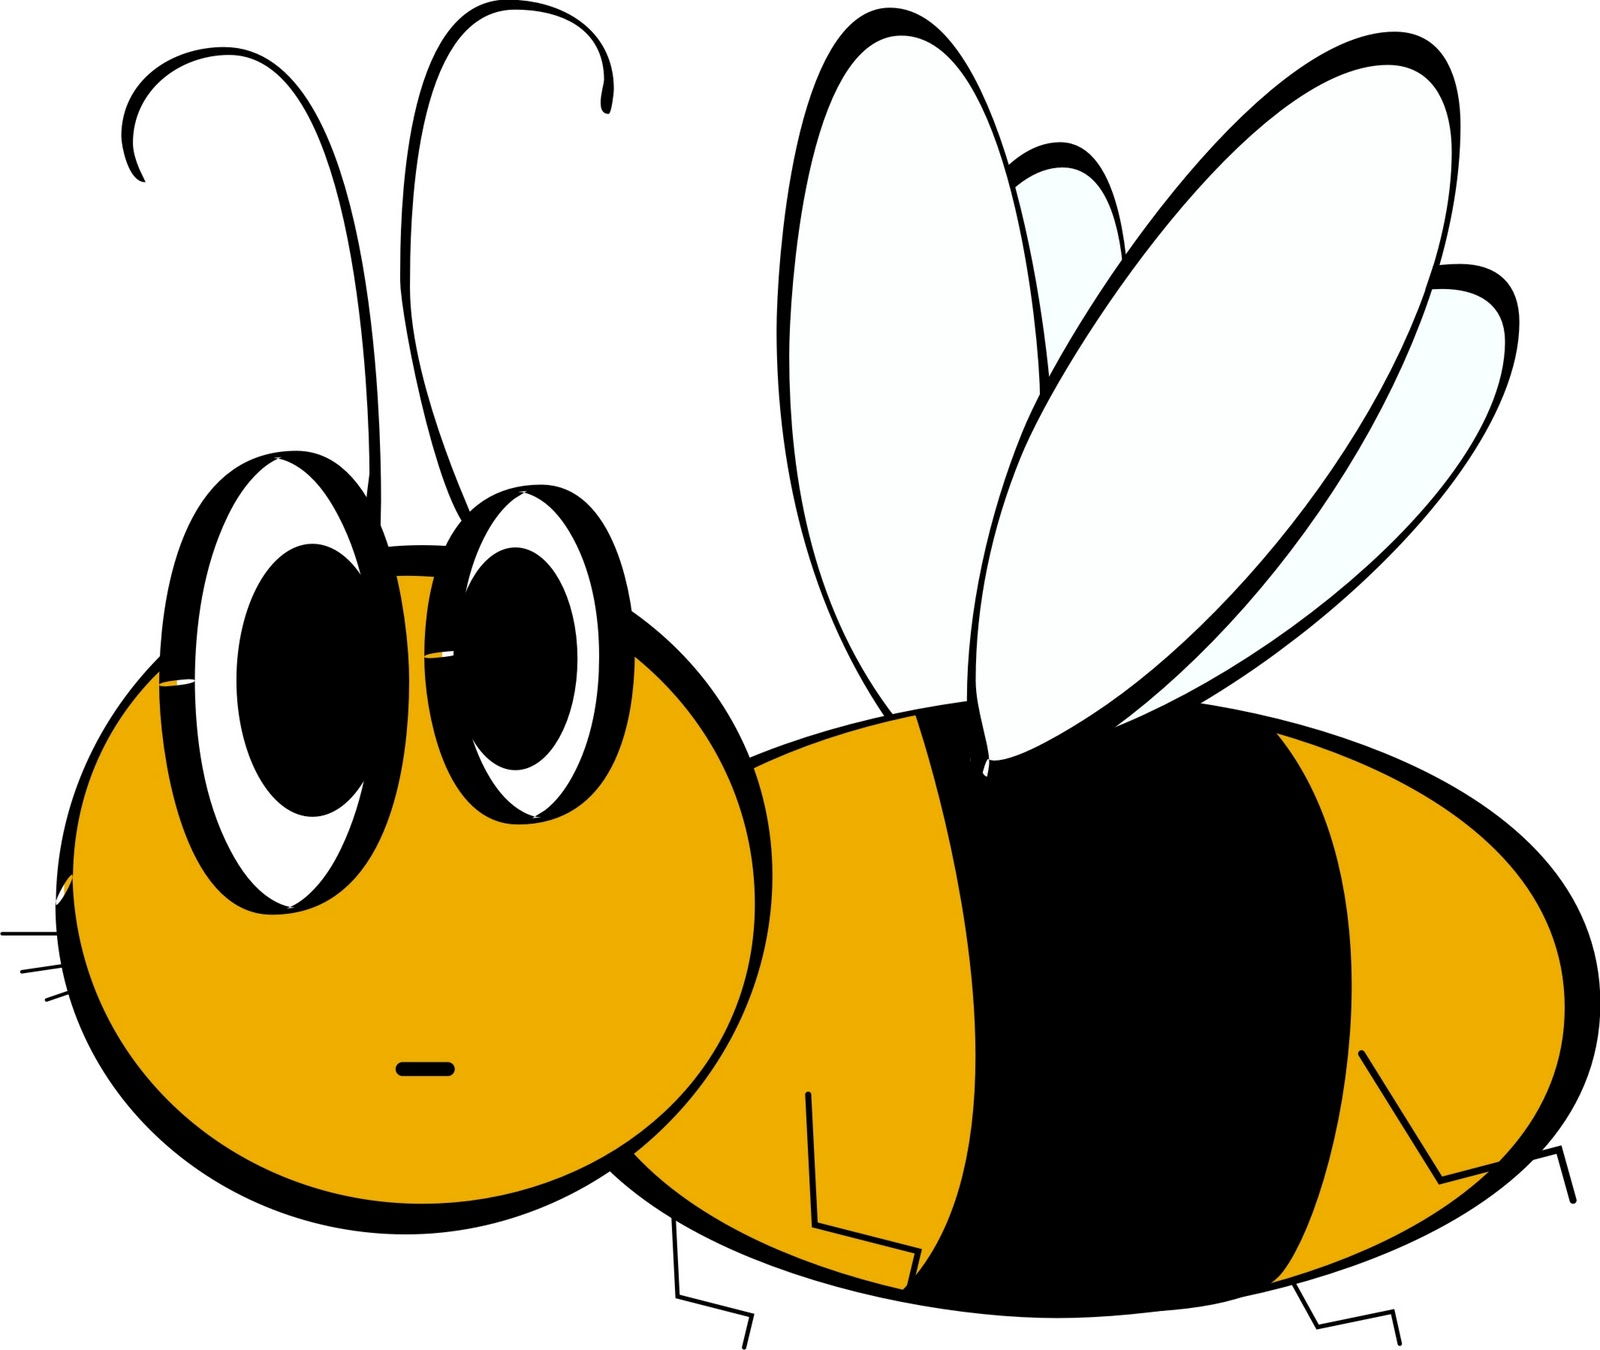 Bee image clipart logo clip download Bee Picture | Free download best Bee Picture on ClipArtMag.com clip download